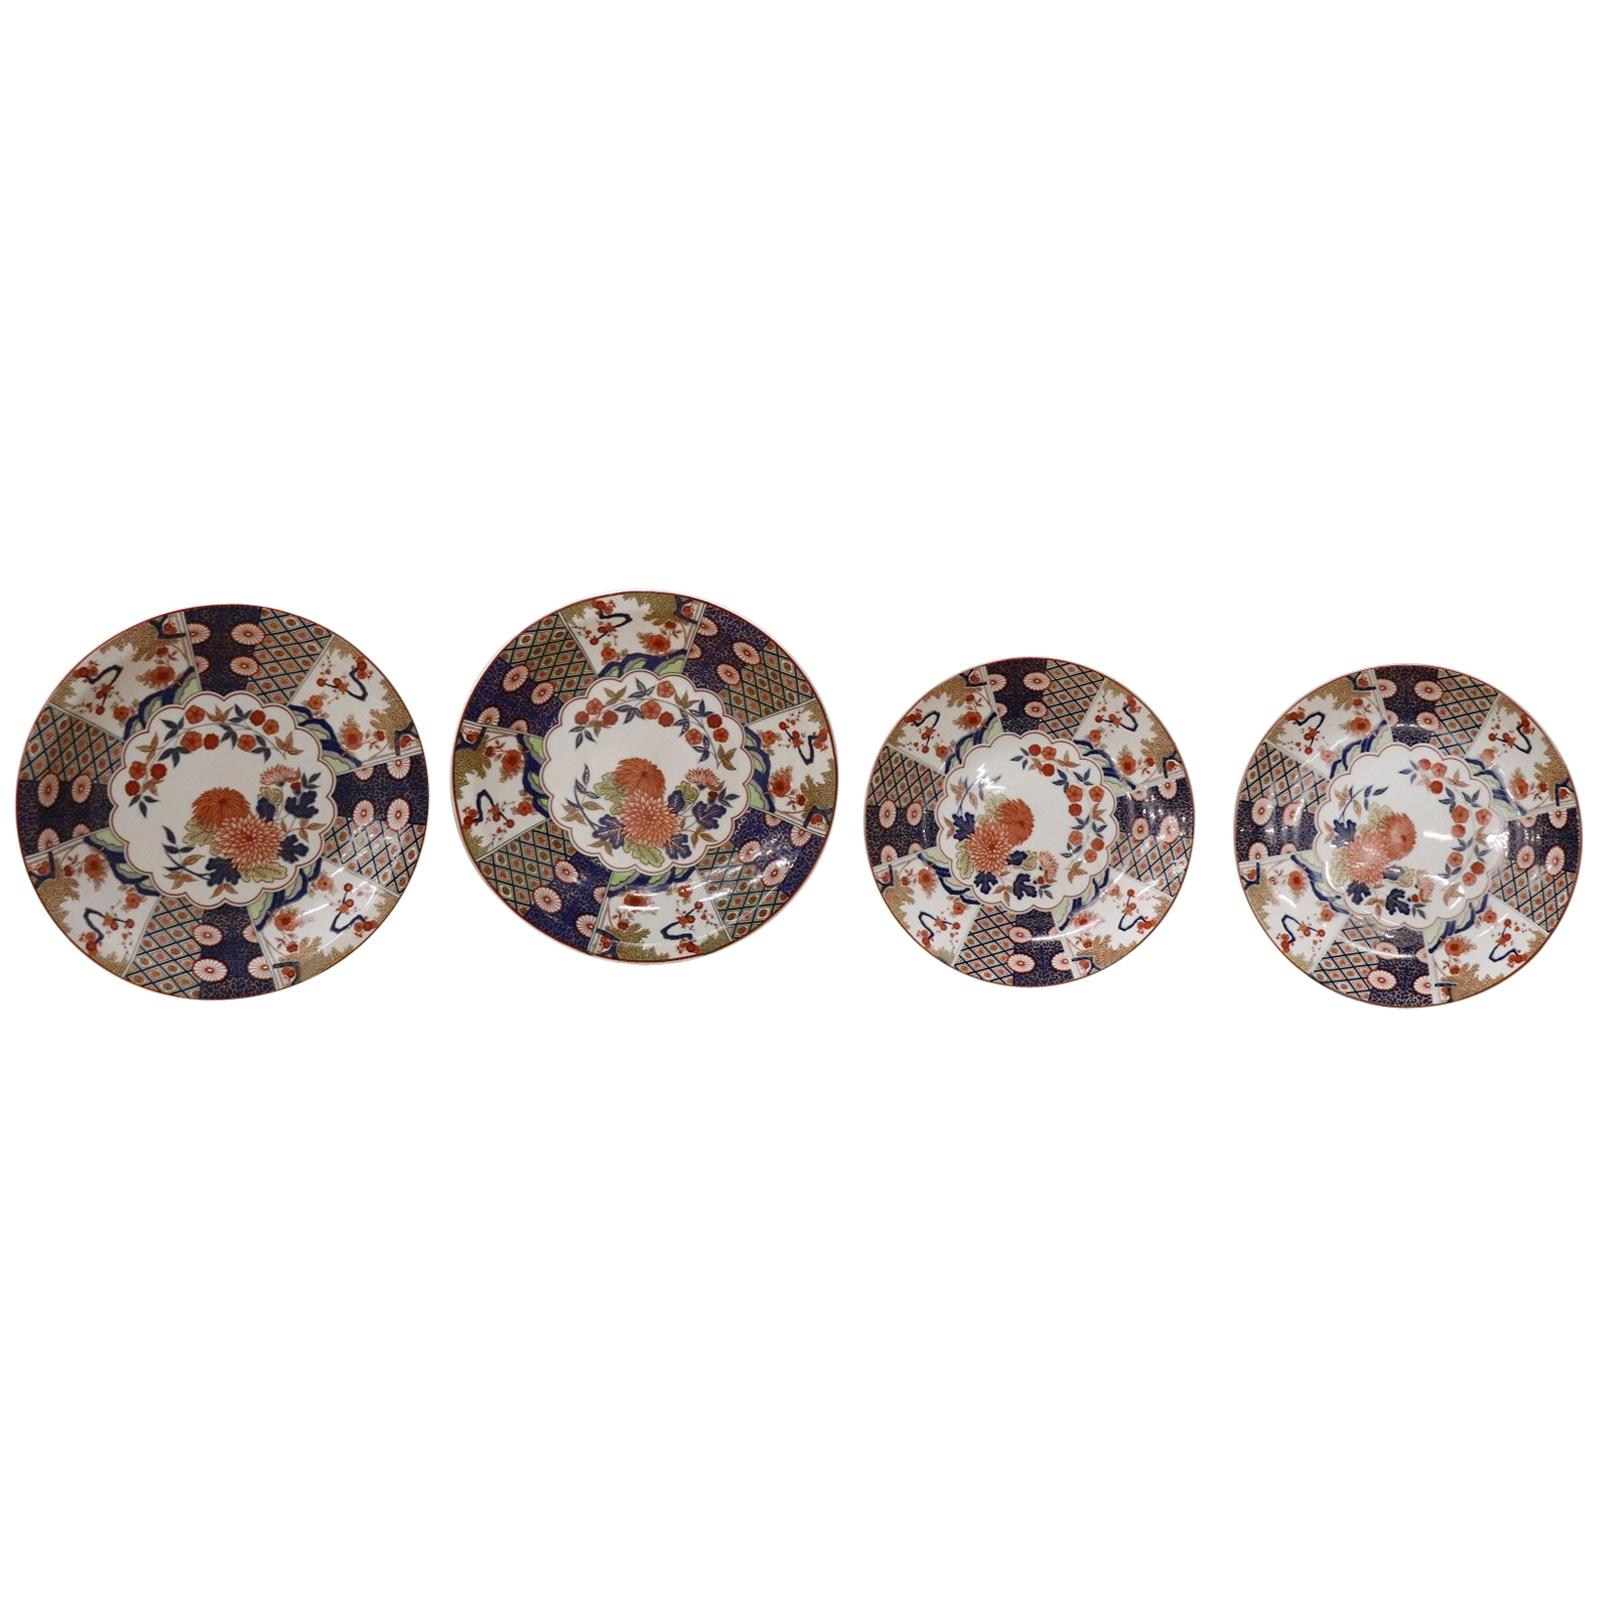 20th Century Imari Porcelain Plate Signed with Red and Blue Flowers